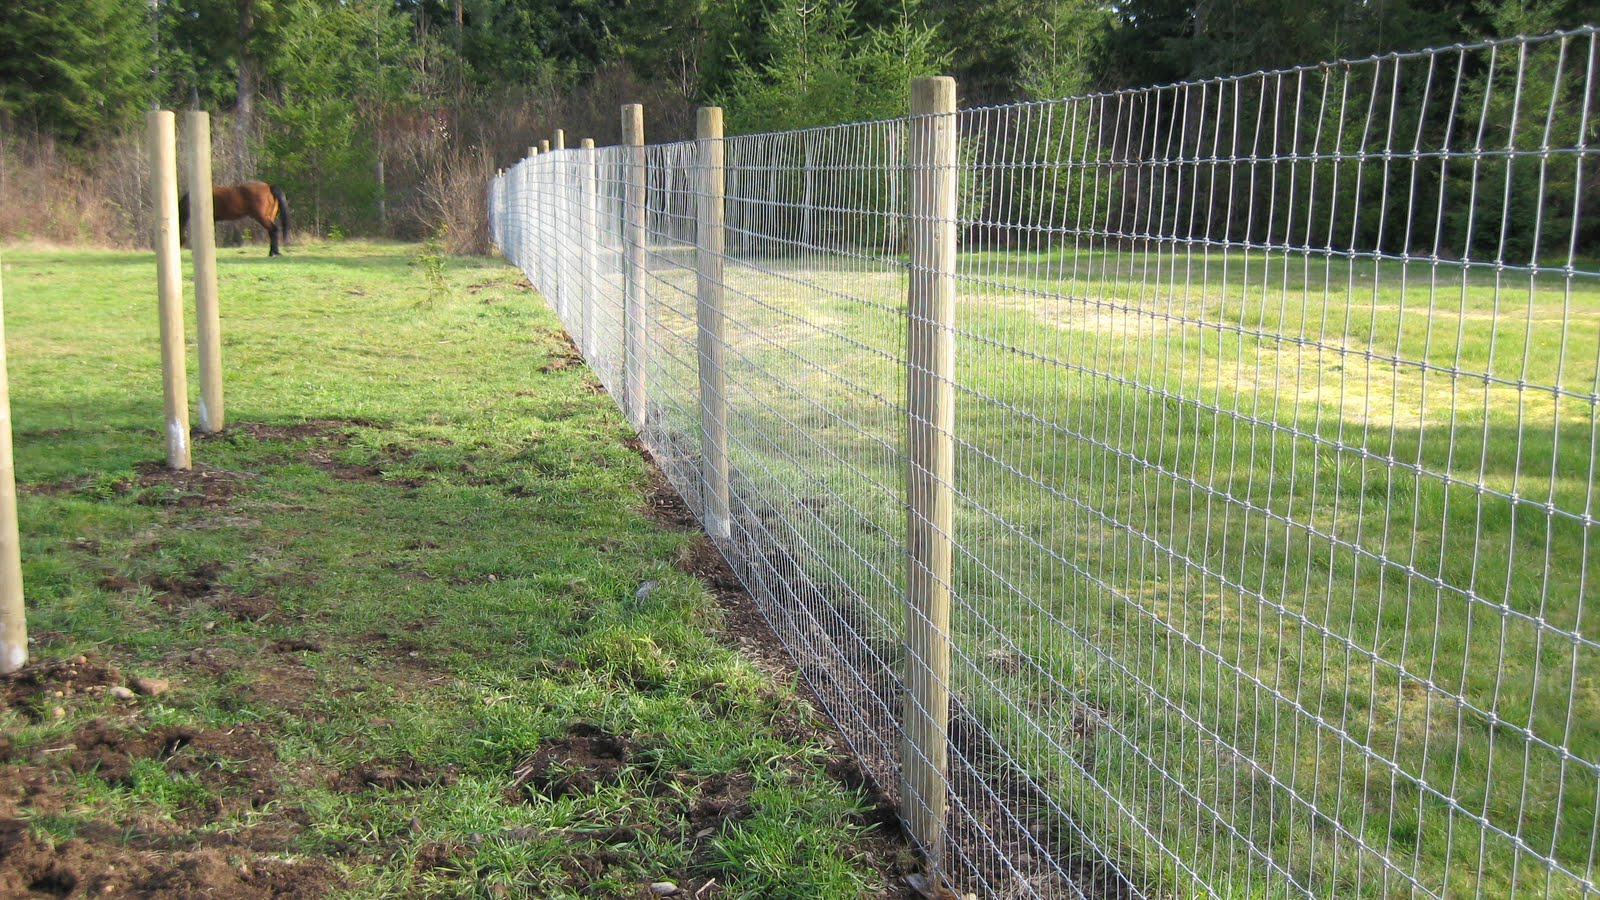 No Climb Fencing Features A Strong Wire That Is Woven In A Grid The Grid Has Small Openings That Prevent A Horses Hoof From Becoming Caught